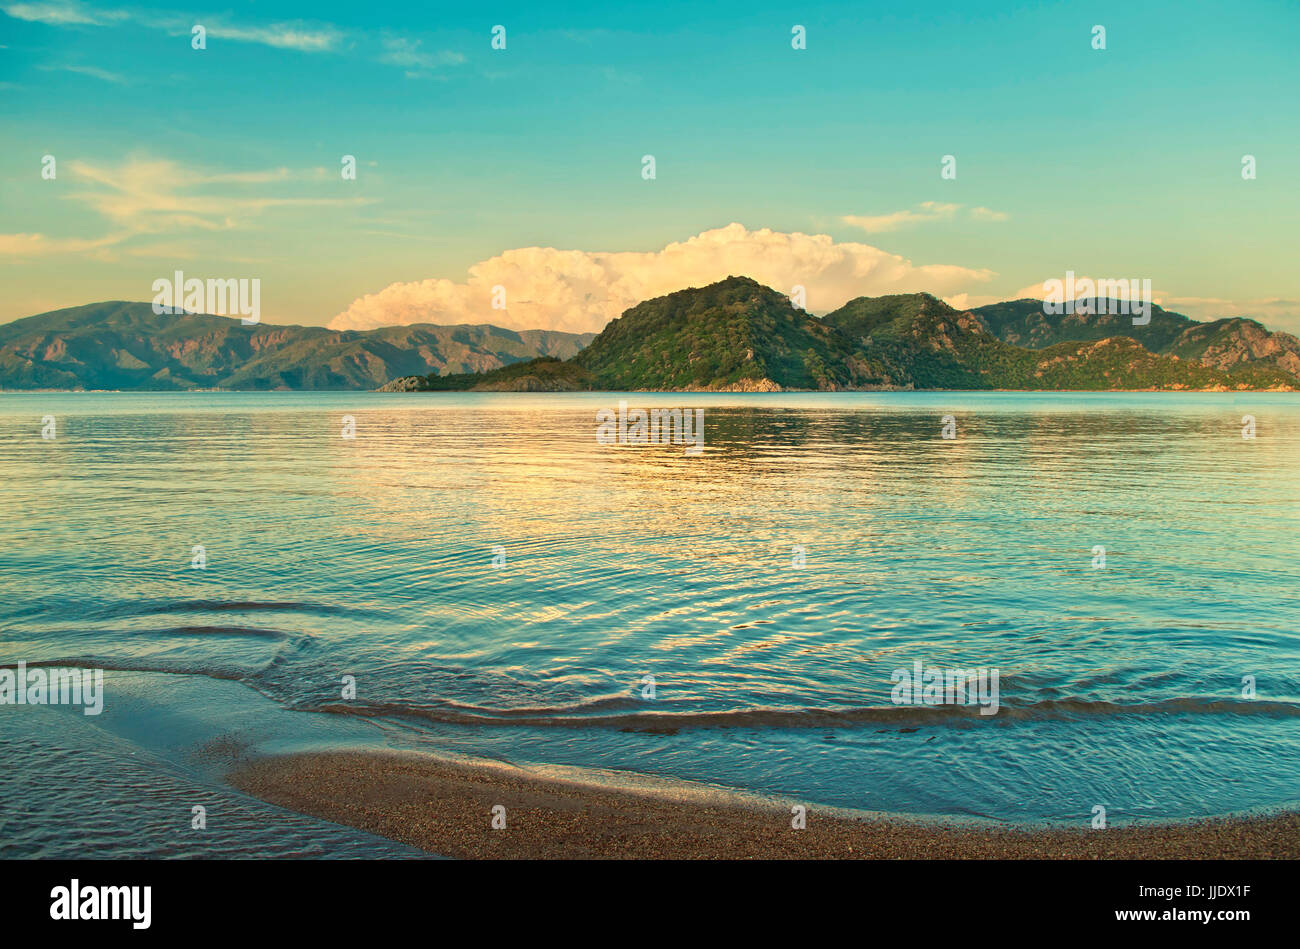 cross-processed green and yellow image of Icmeler beach on Aegean sea cost during sunset, Marmaris, Turkey - Stock Image